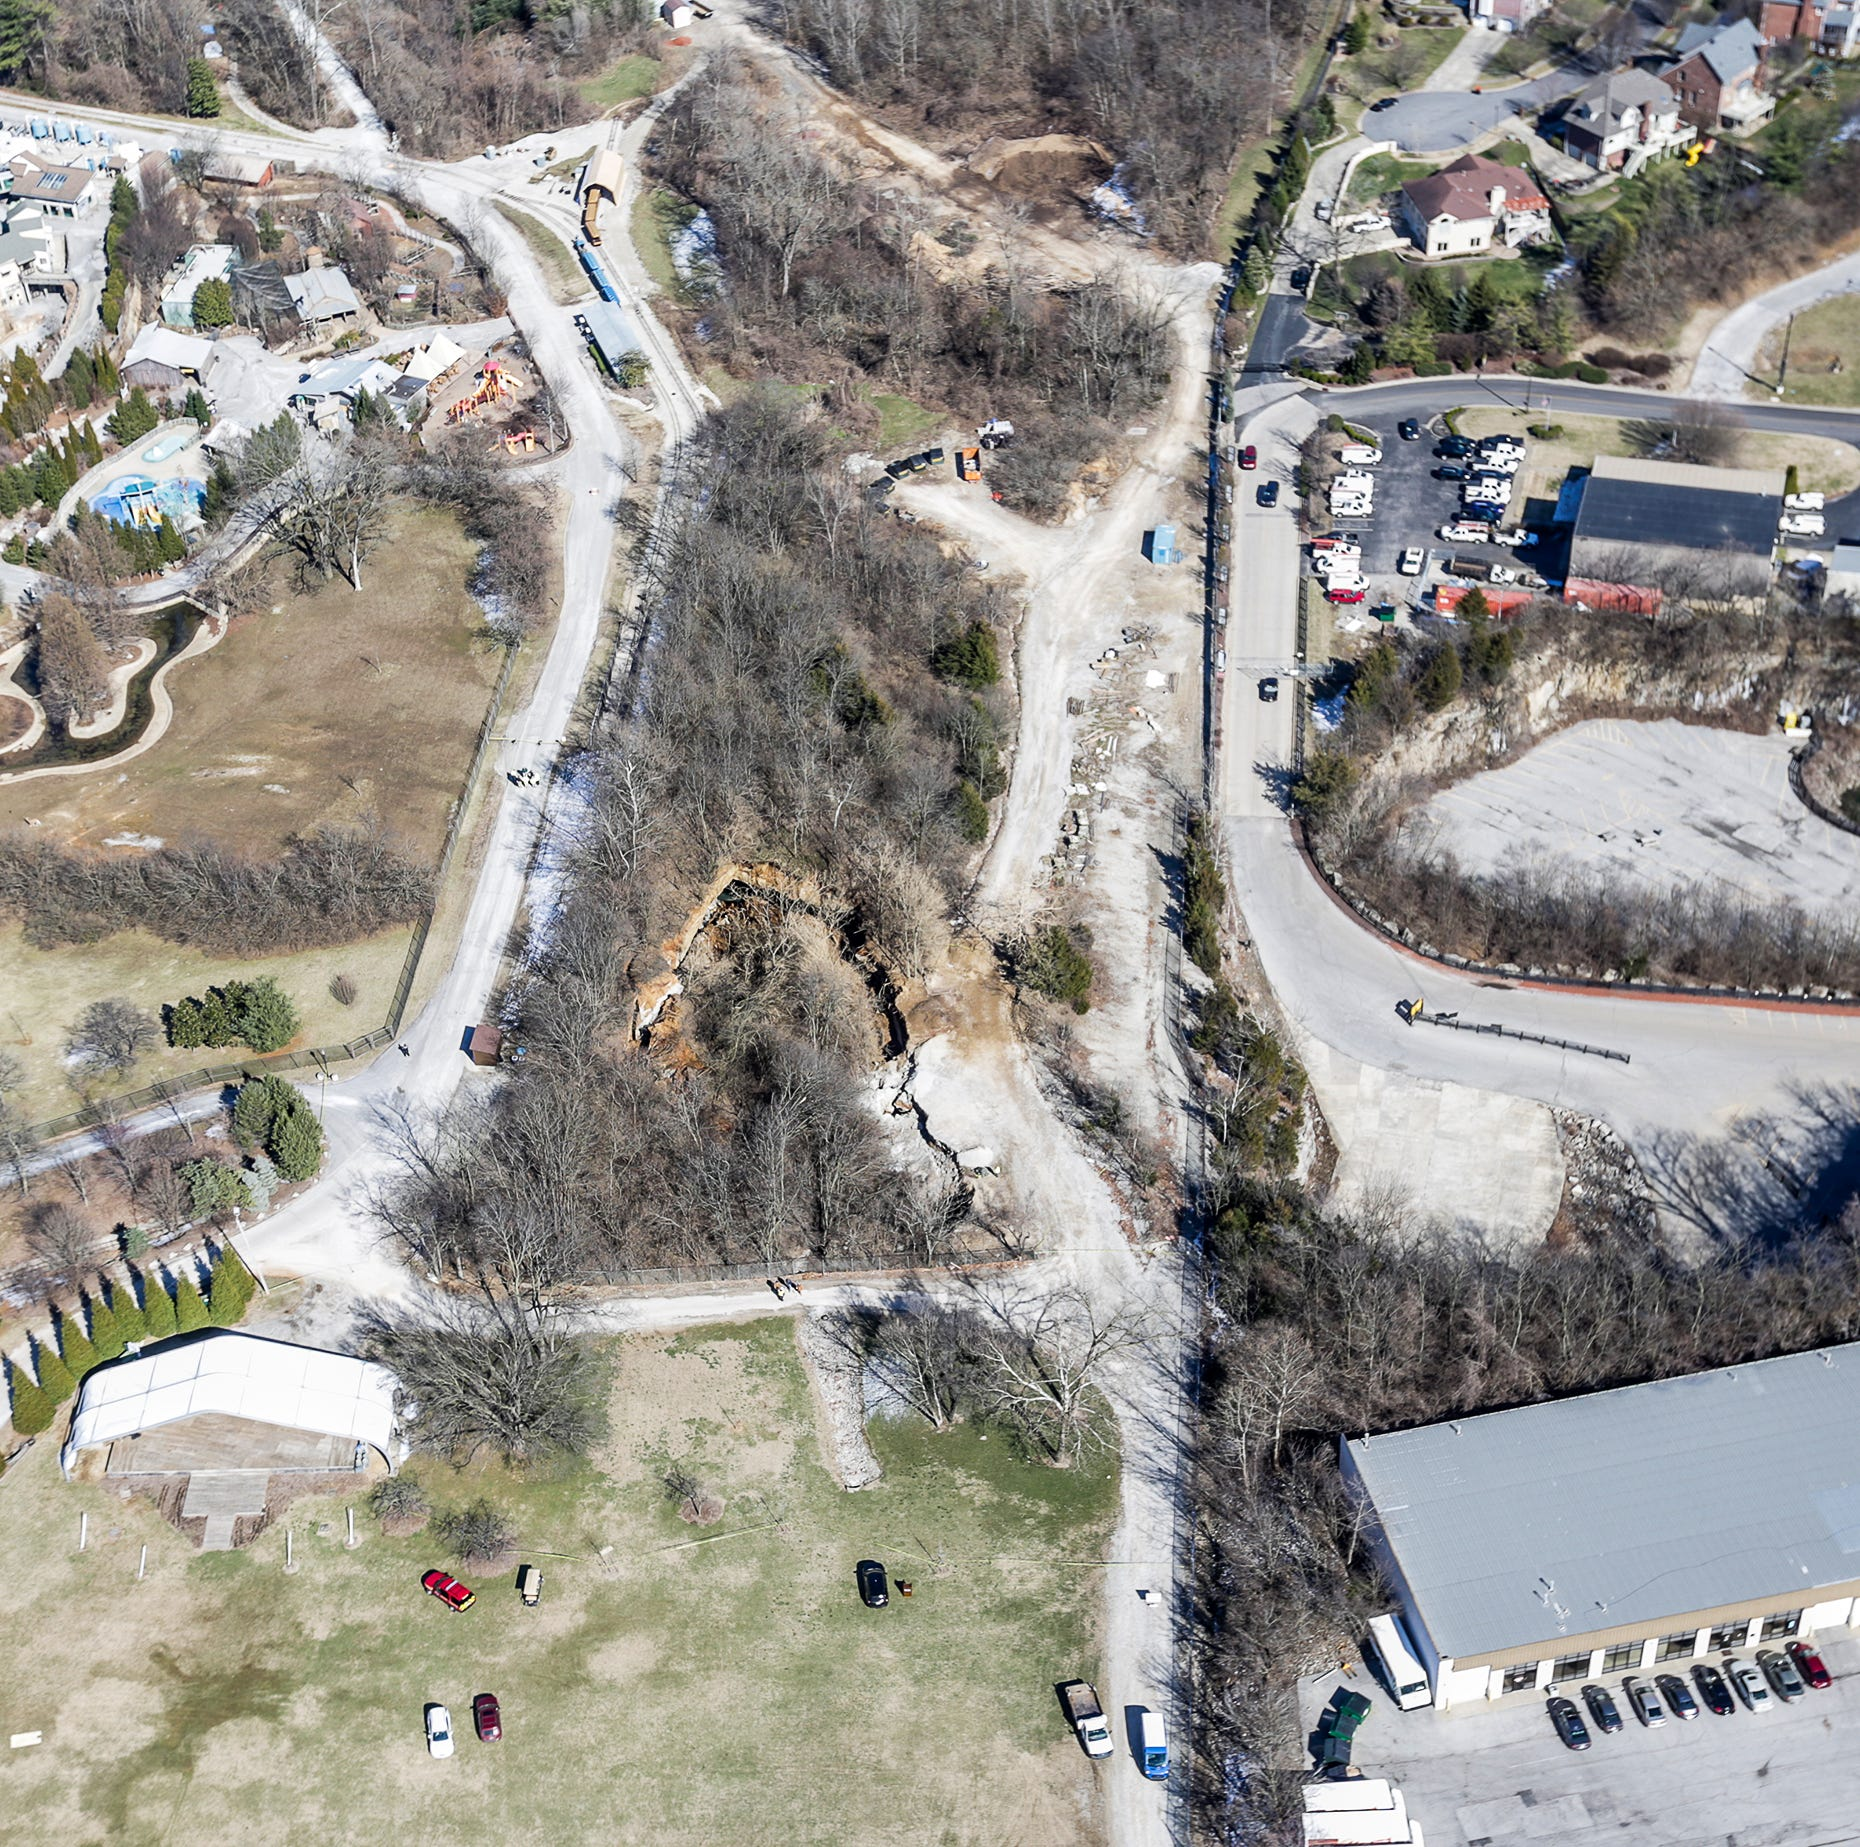 'It's an act of nature.' Massive sinkhole forms at Louisville Zoo